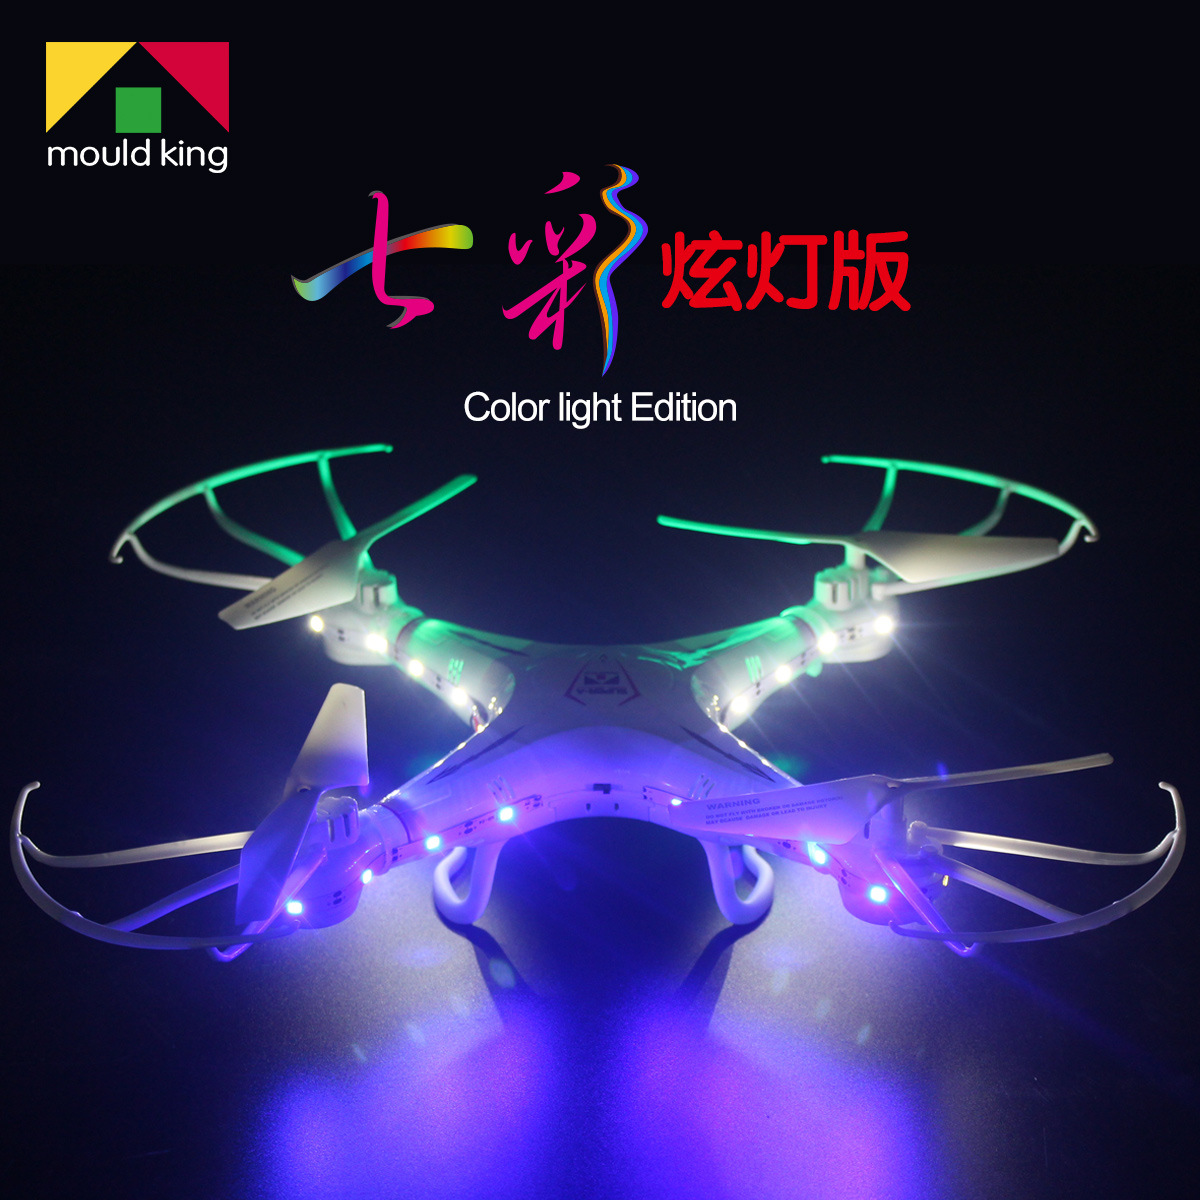 Yuxing Super A Quadcopter High-definition Drone For Aerial Photography 4g Memory Video Photographic Remote Control Aircraft